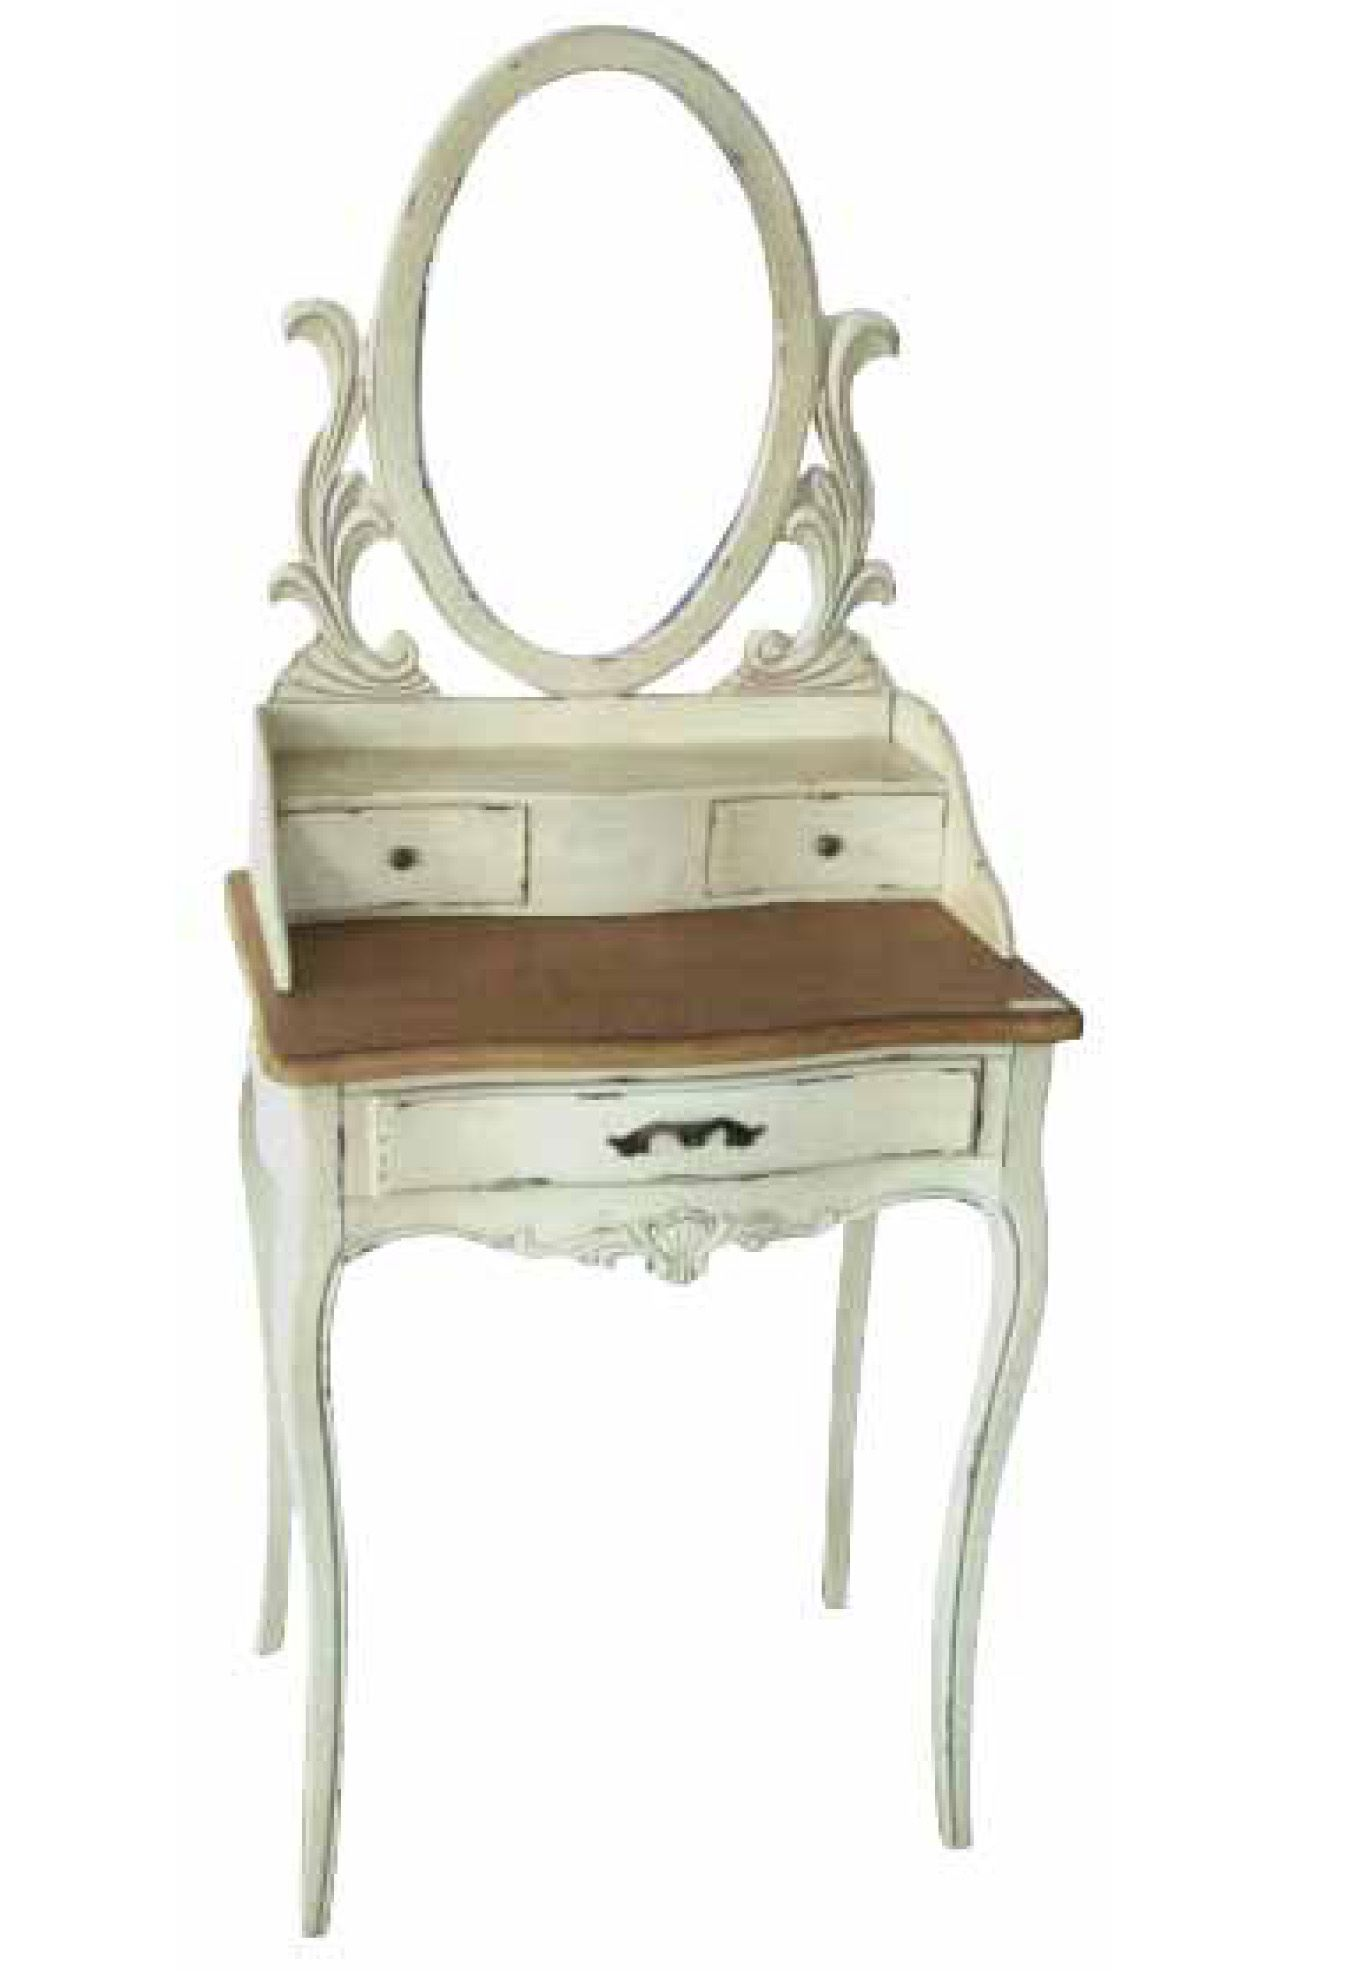 Fine Looking Single Drawer Vanity Dresser With Oval Mirror White Polished Clic Makeup Table For